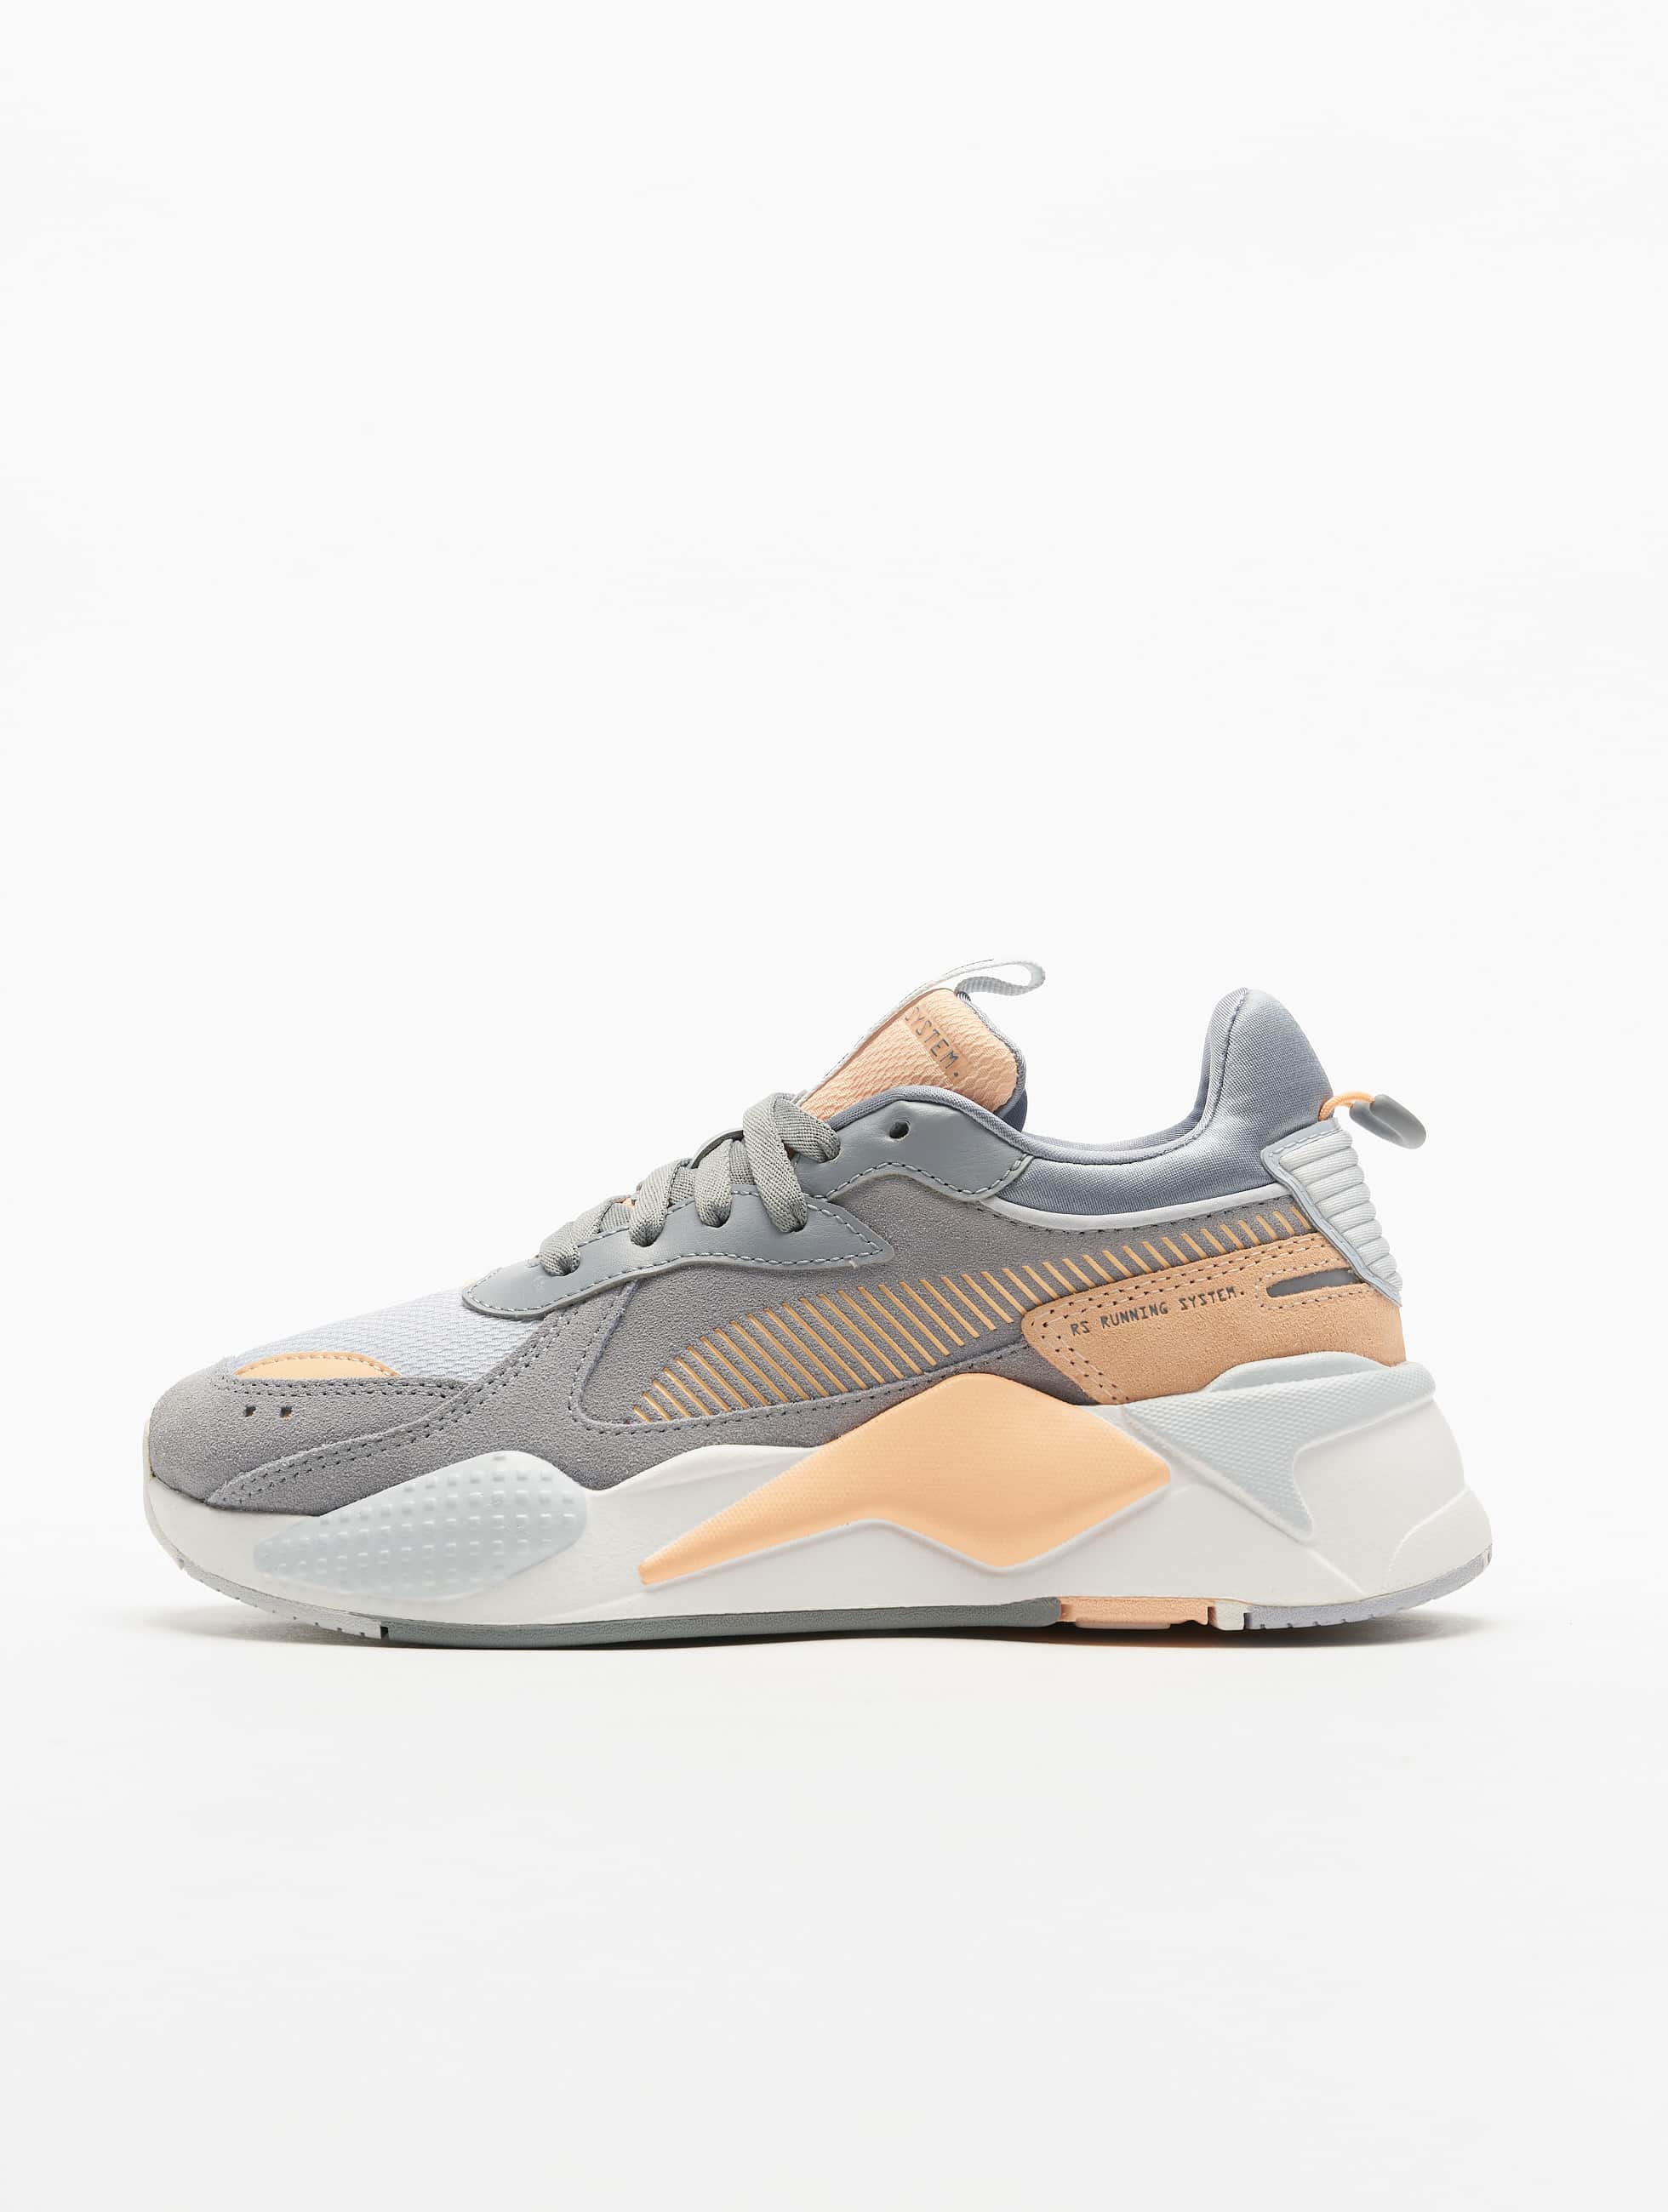 Puma RS X Reinvent Sneakers TradewindsHeather